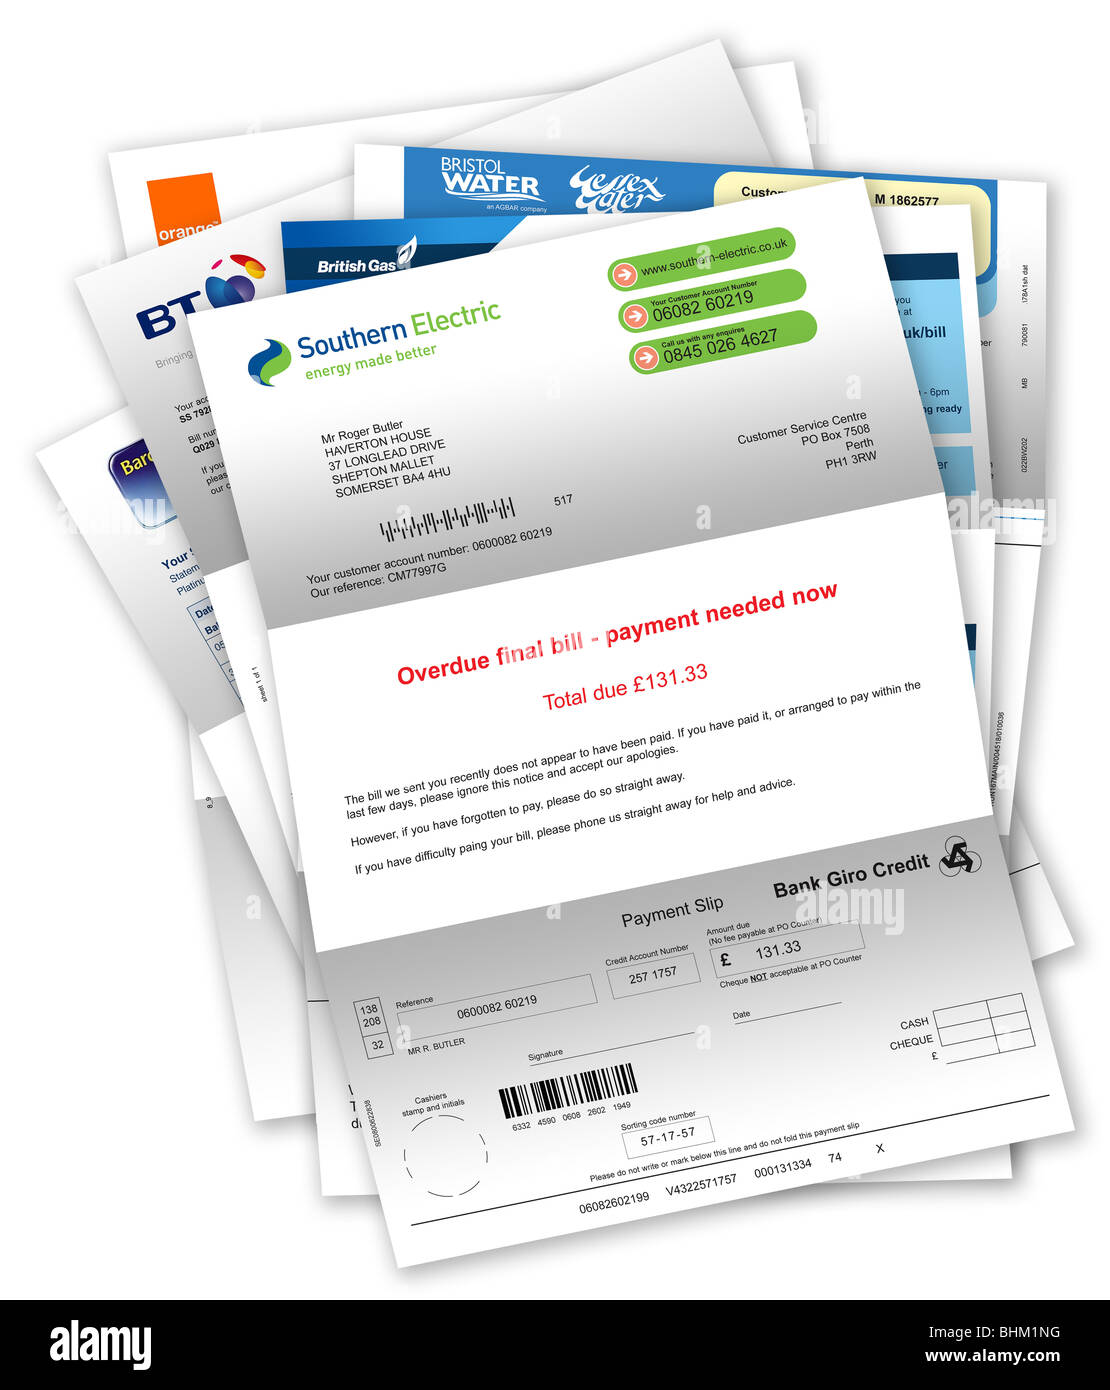 Final Demand Overdue Payment Letter For Unpaid Electricity Bill With Other Household Bills Beneath